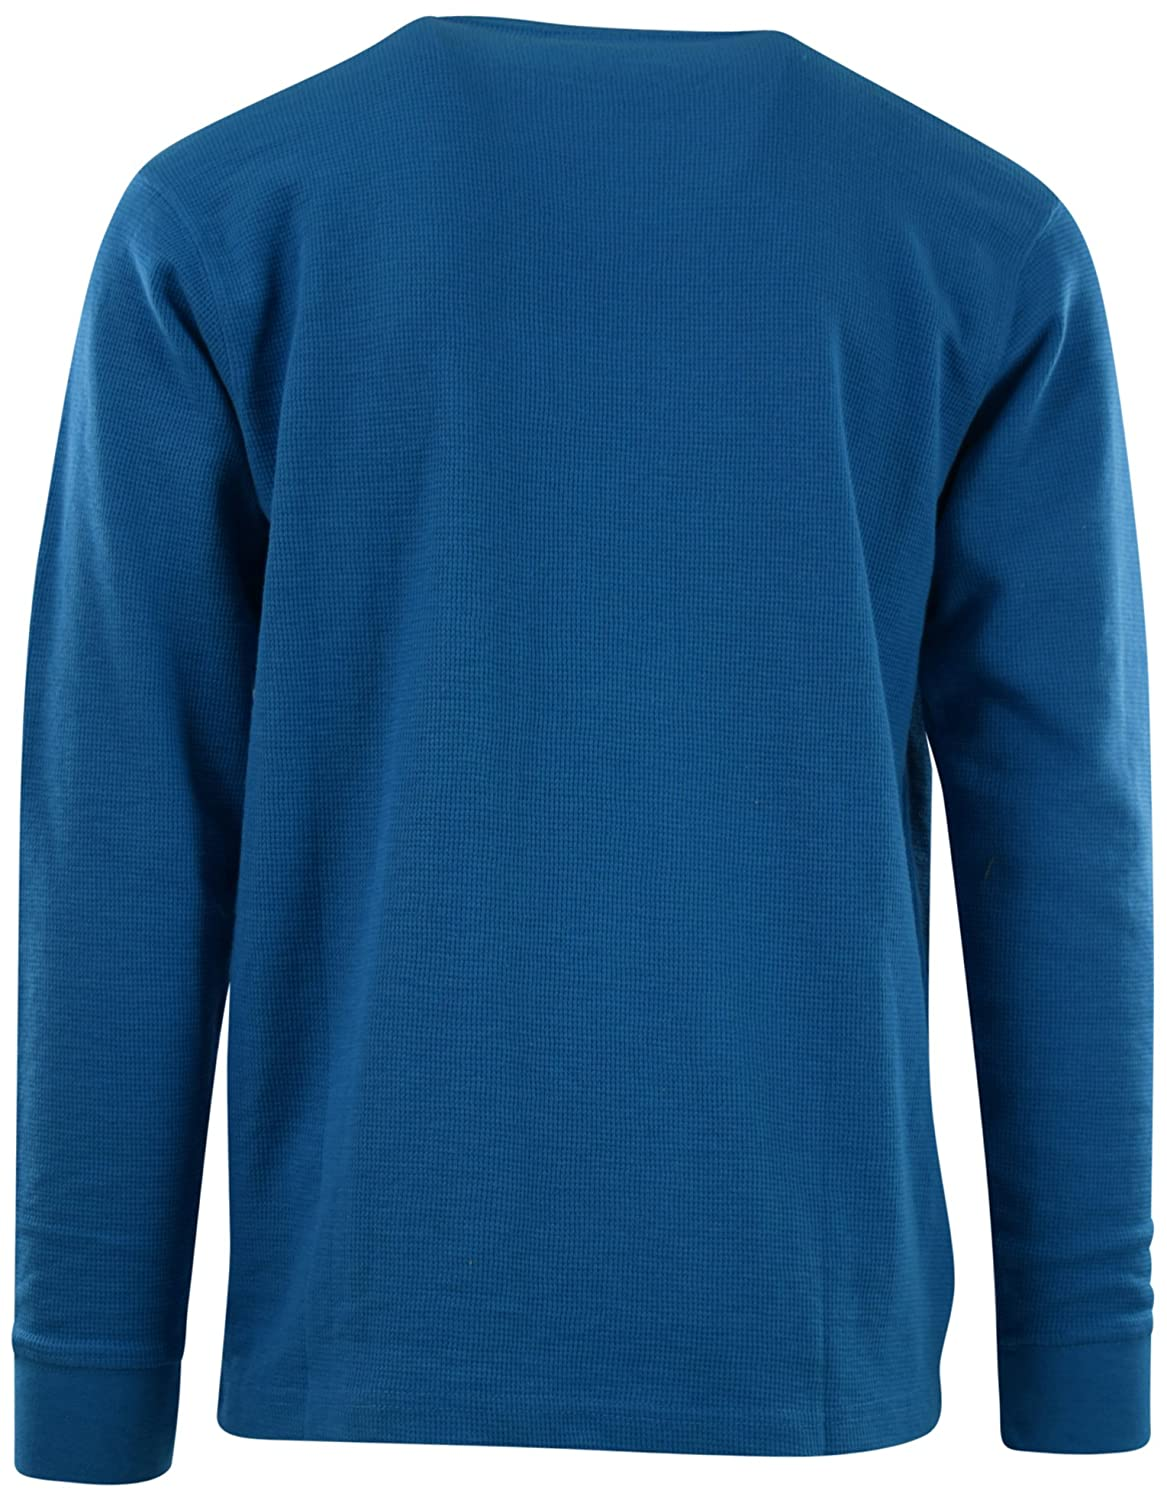 ChoiceApparel Mens Long Sleeve Thermal Waffle Pattern Crew Neck Shirts